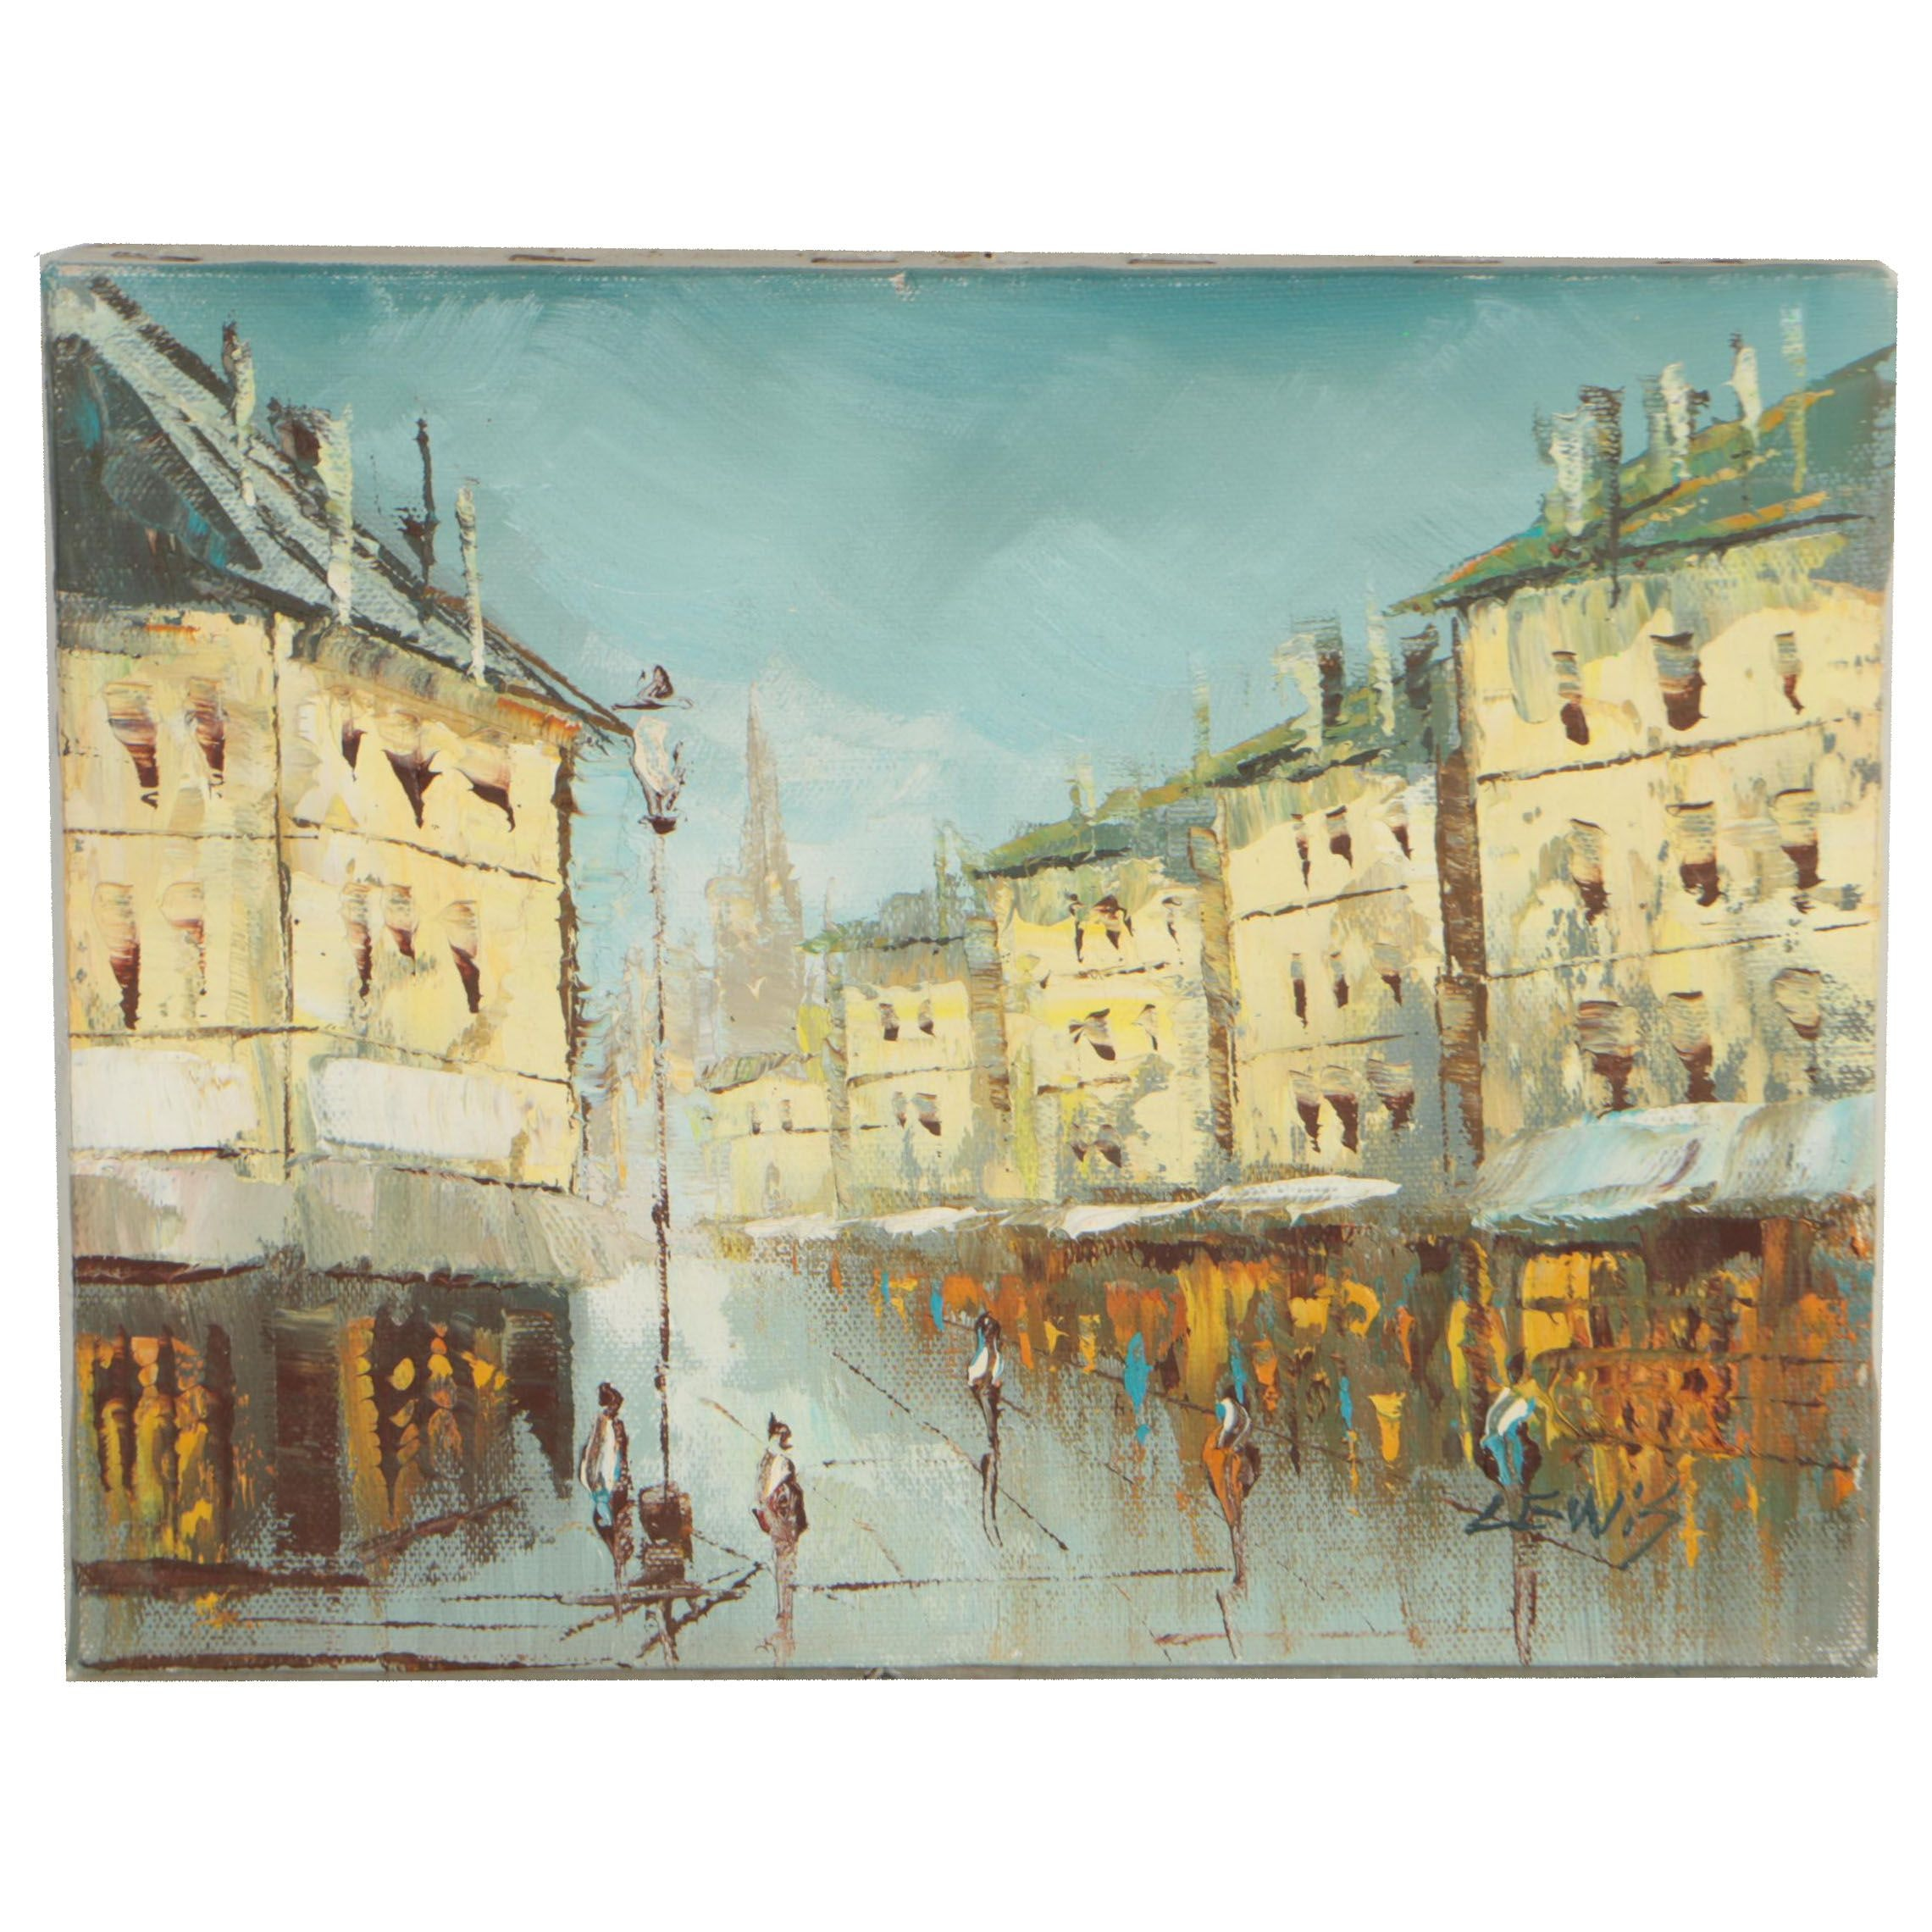 Lewis Oil Painting Abstract Cityscape